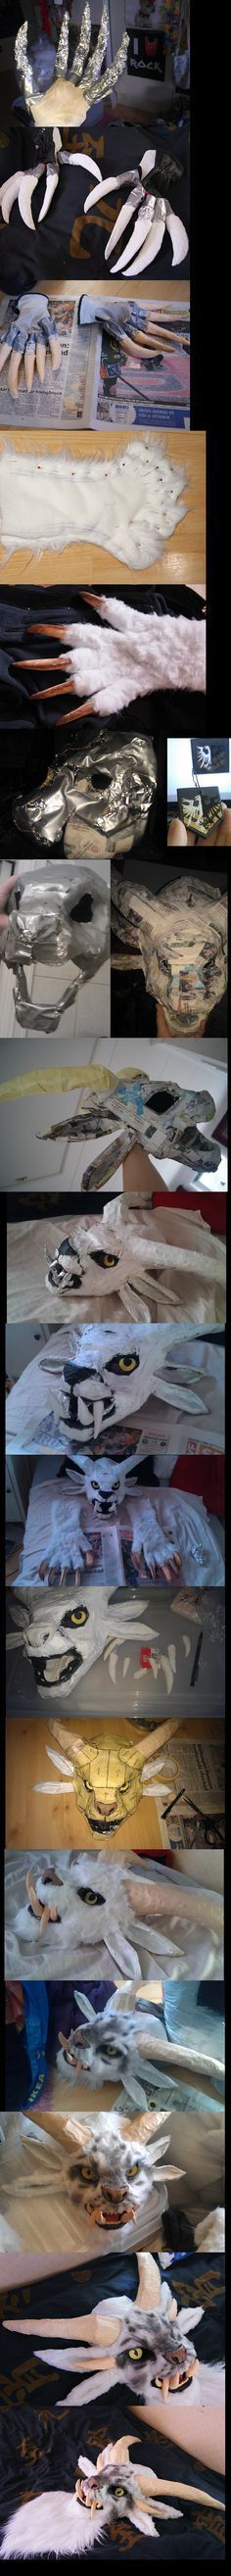 Charr Cosplay WIP by Lillgoban.deviantart.com on @deviantART - COSPLAY IS BAEEE!!! Tap the pin now to grab yourself some BAE Cosplay leggings and shirts! From super hero fitness leggings, super hero fitness shirts, and so much more that wil make you say YASSS!!!